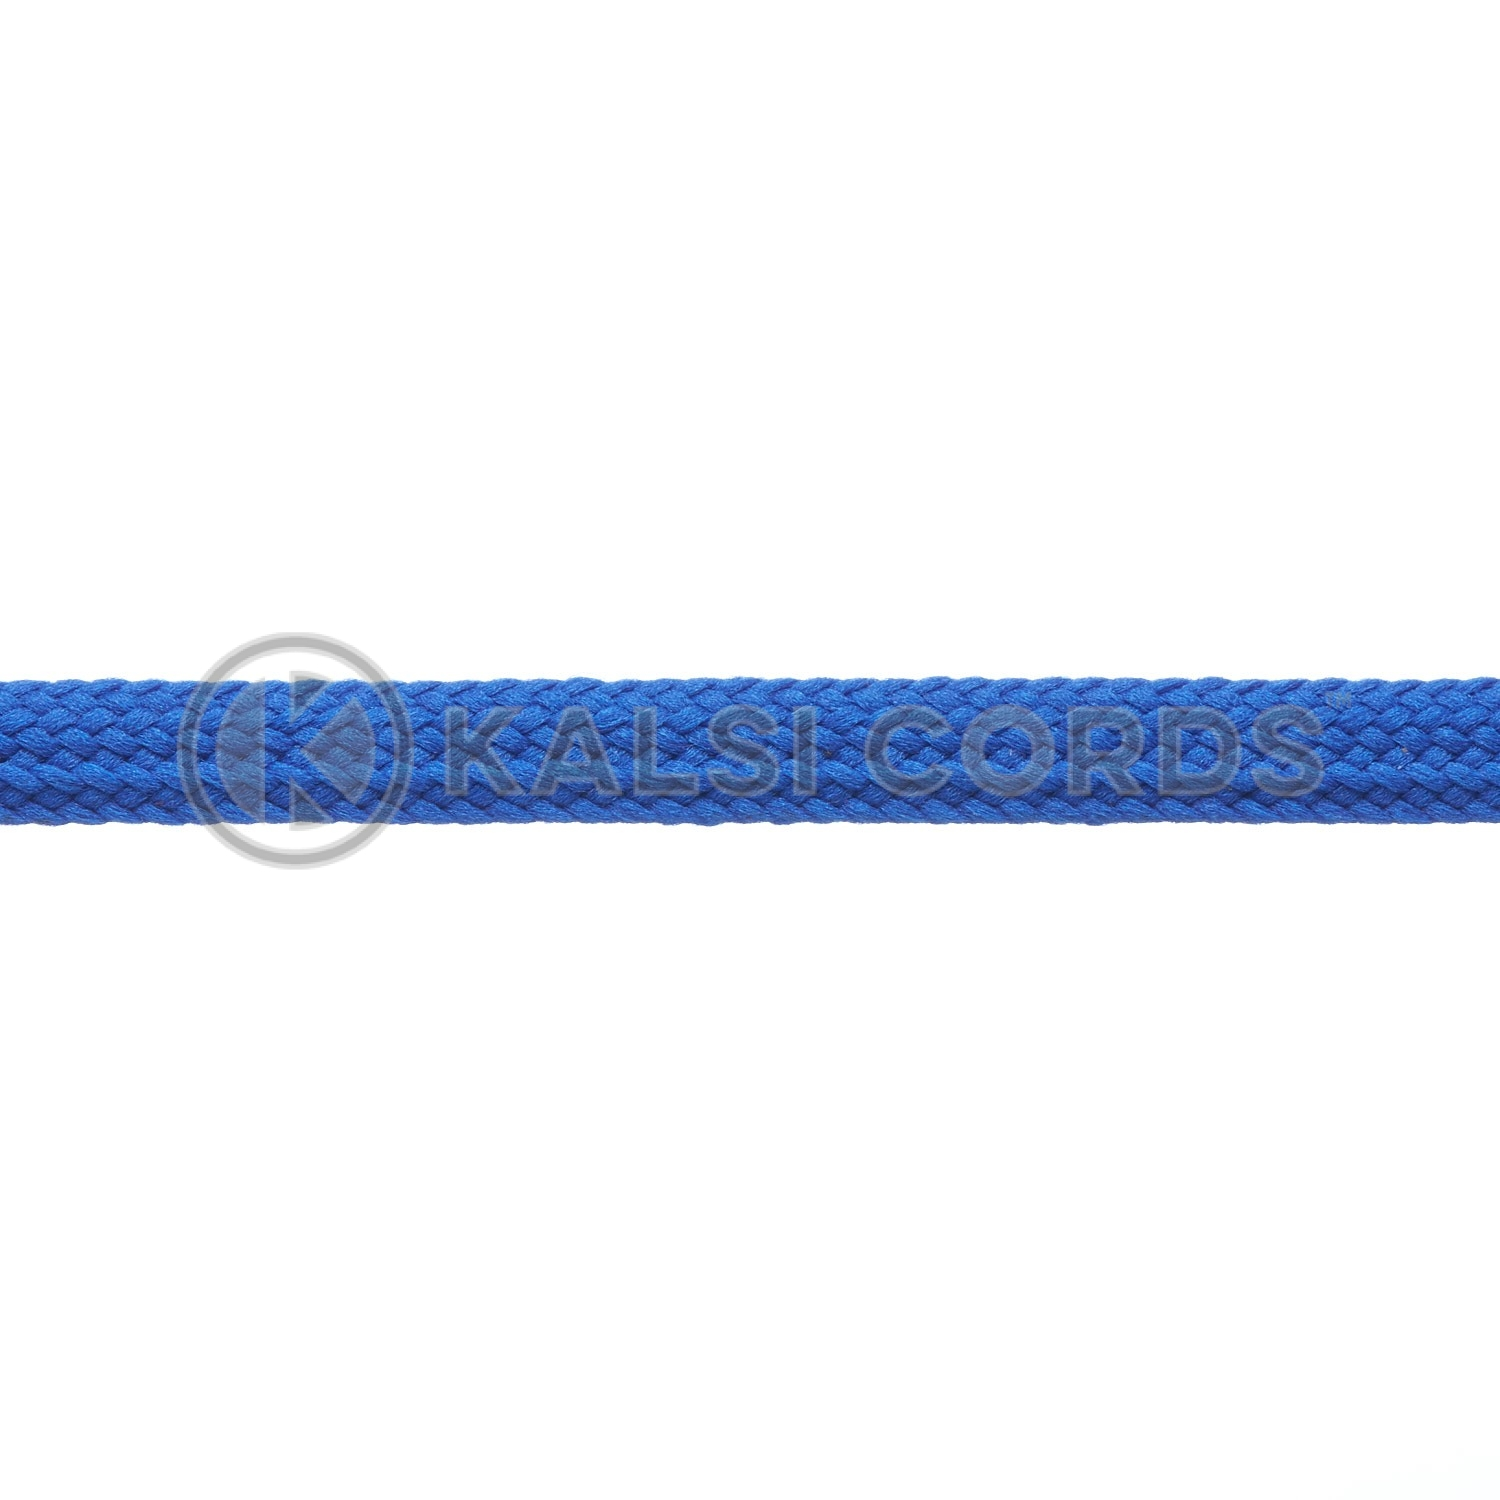 9mm Flat Shoe Laces Tubular Royal Blue PG790 Sports Trainers Boots Footwear Drawstring Drawcord